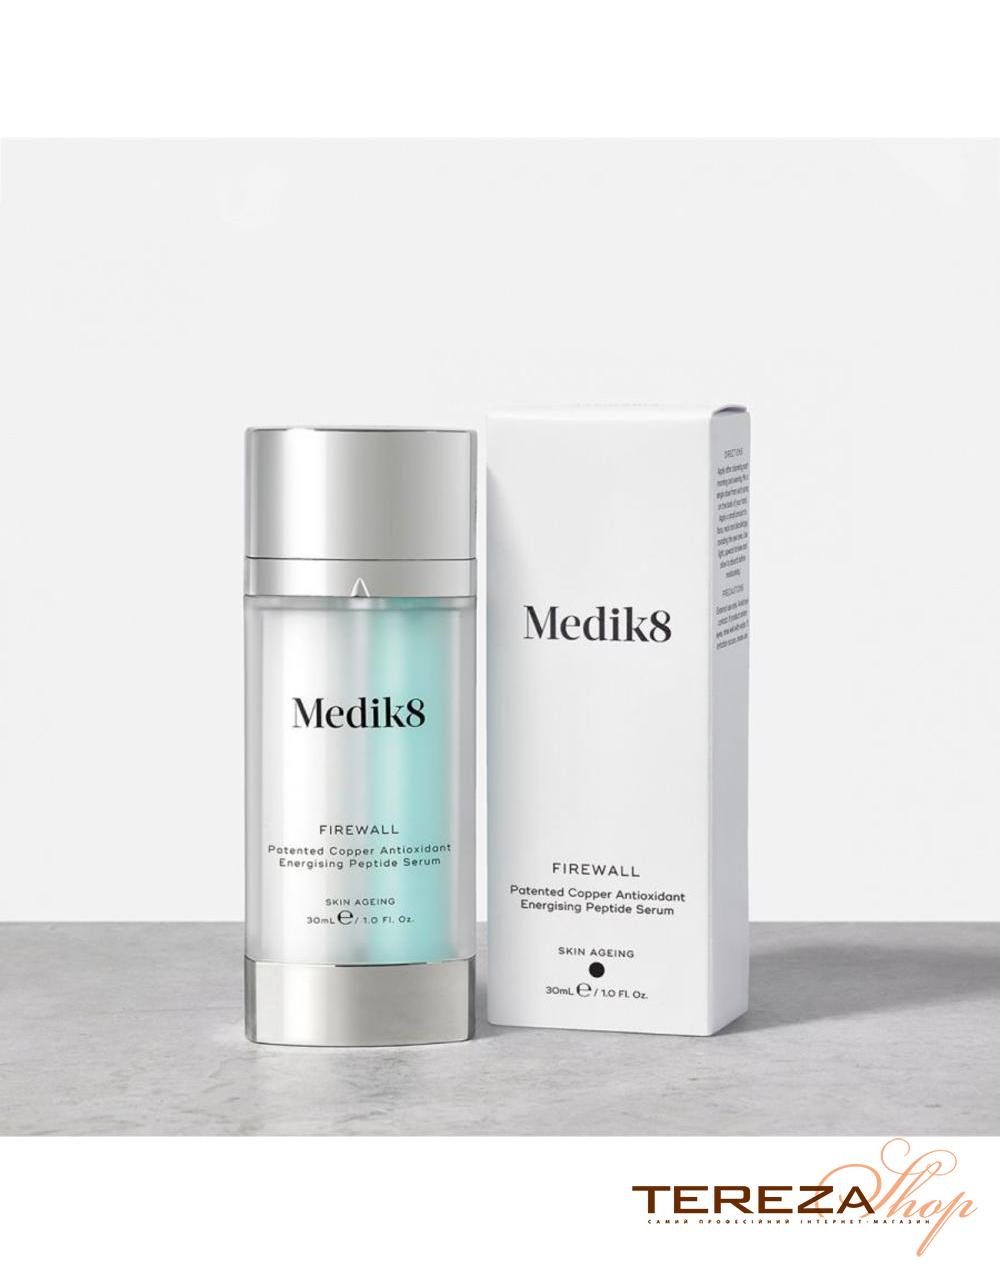 FIREWALL ANTI AGEING SERUM MEDIK8 | Tereza Shop